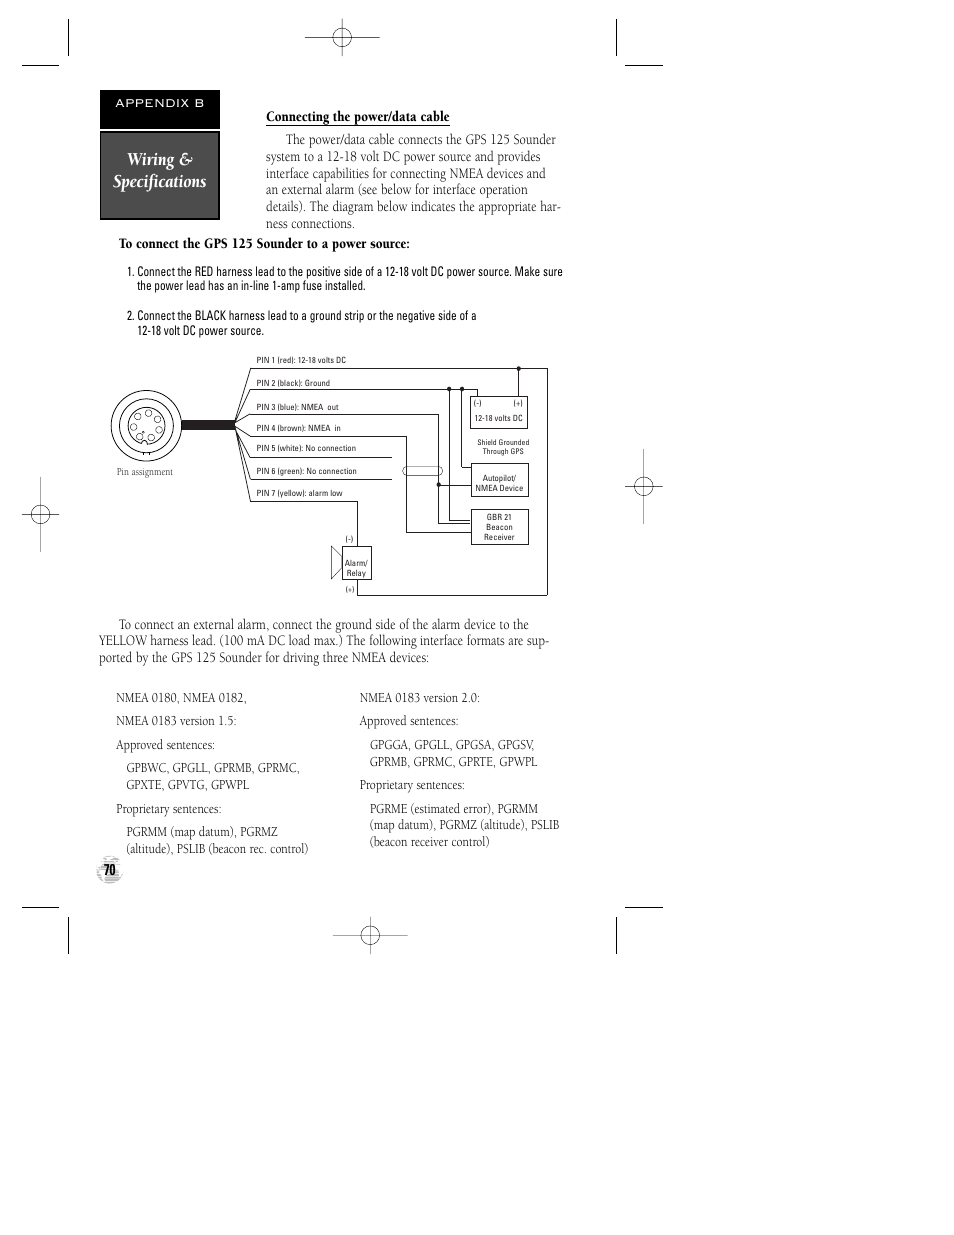 wiring & specifications | garmin gps 125 sounder user manual | page 74 / 84